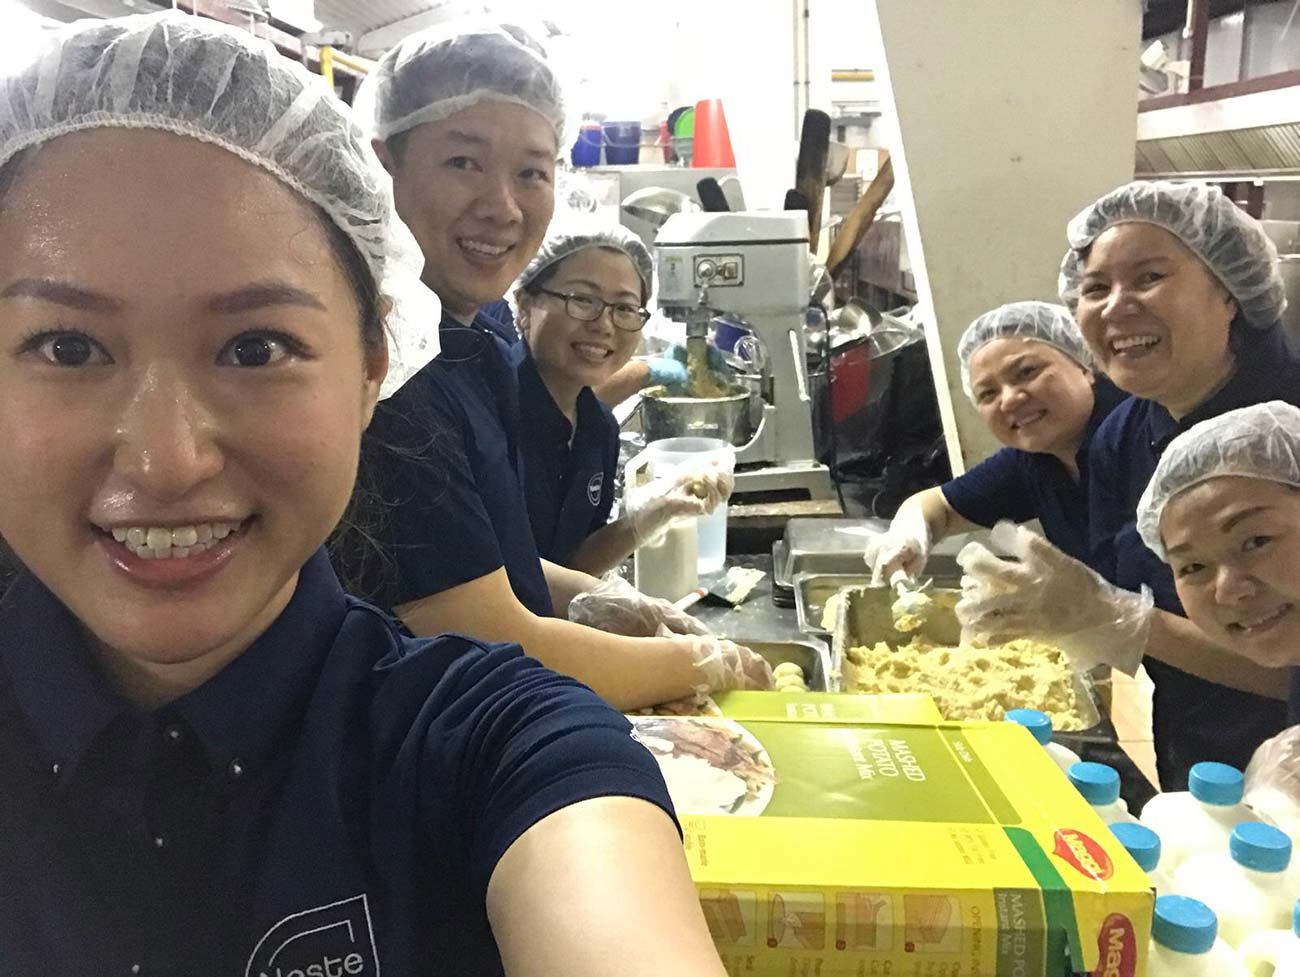 Singapore team did volunteering work preparing meals at Willing Hearts.